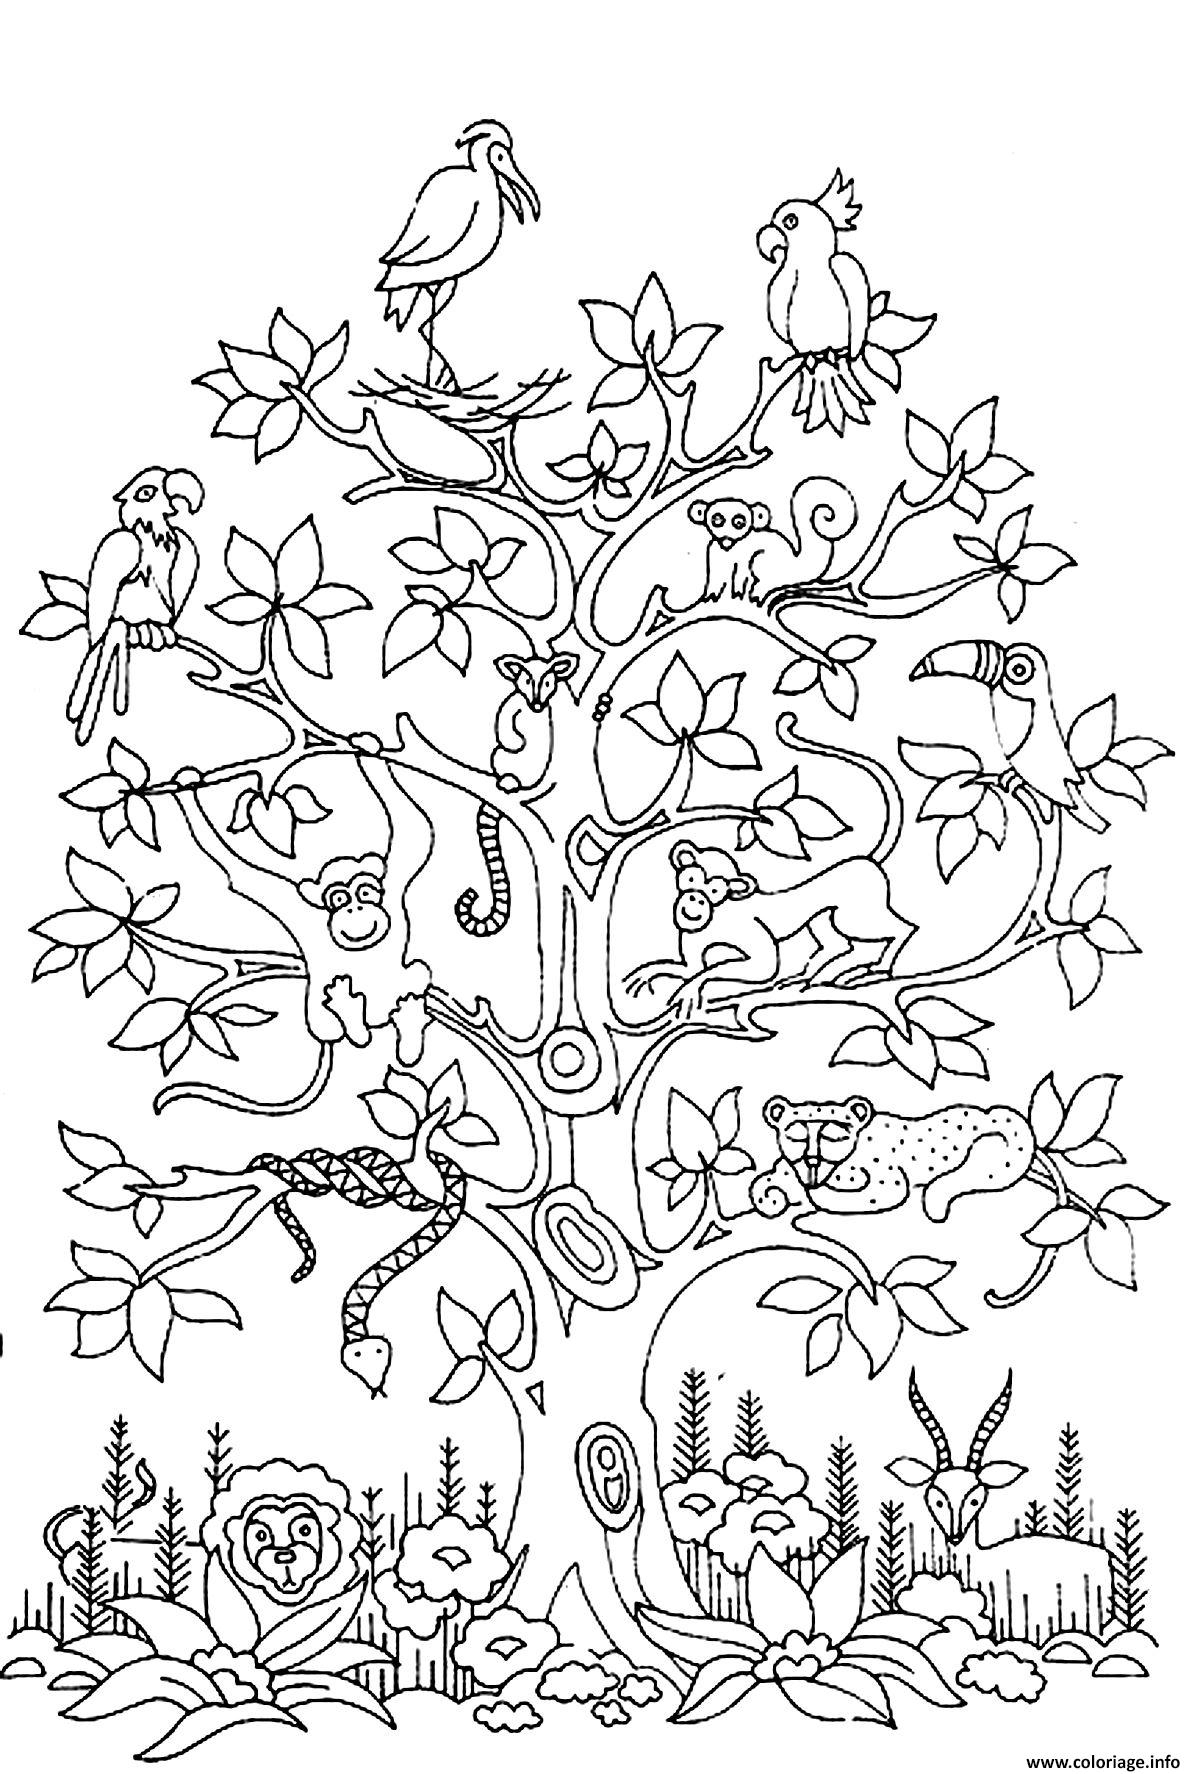 Coloriage Adulte Difficile Arbre Oiseaux Serpents Singes Dessin destiné Arbre A Colorier Et A Imprimer